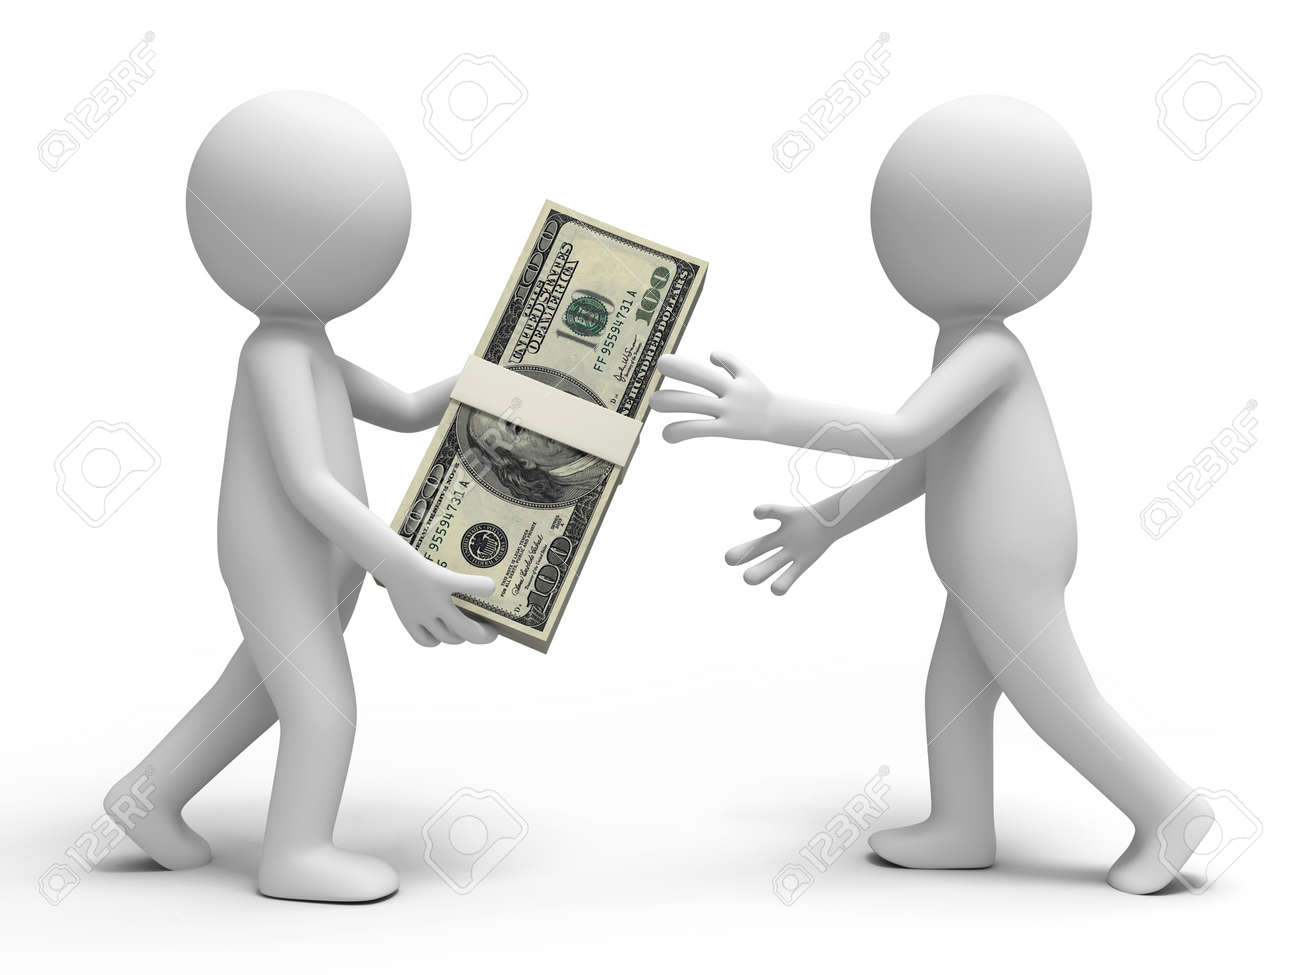 Dollar a person giving a bundle of dollars to another one Stock Photo - 15458150